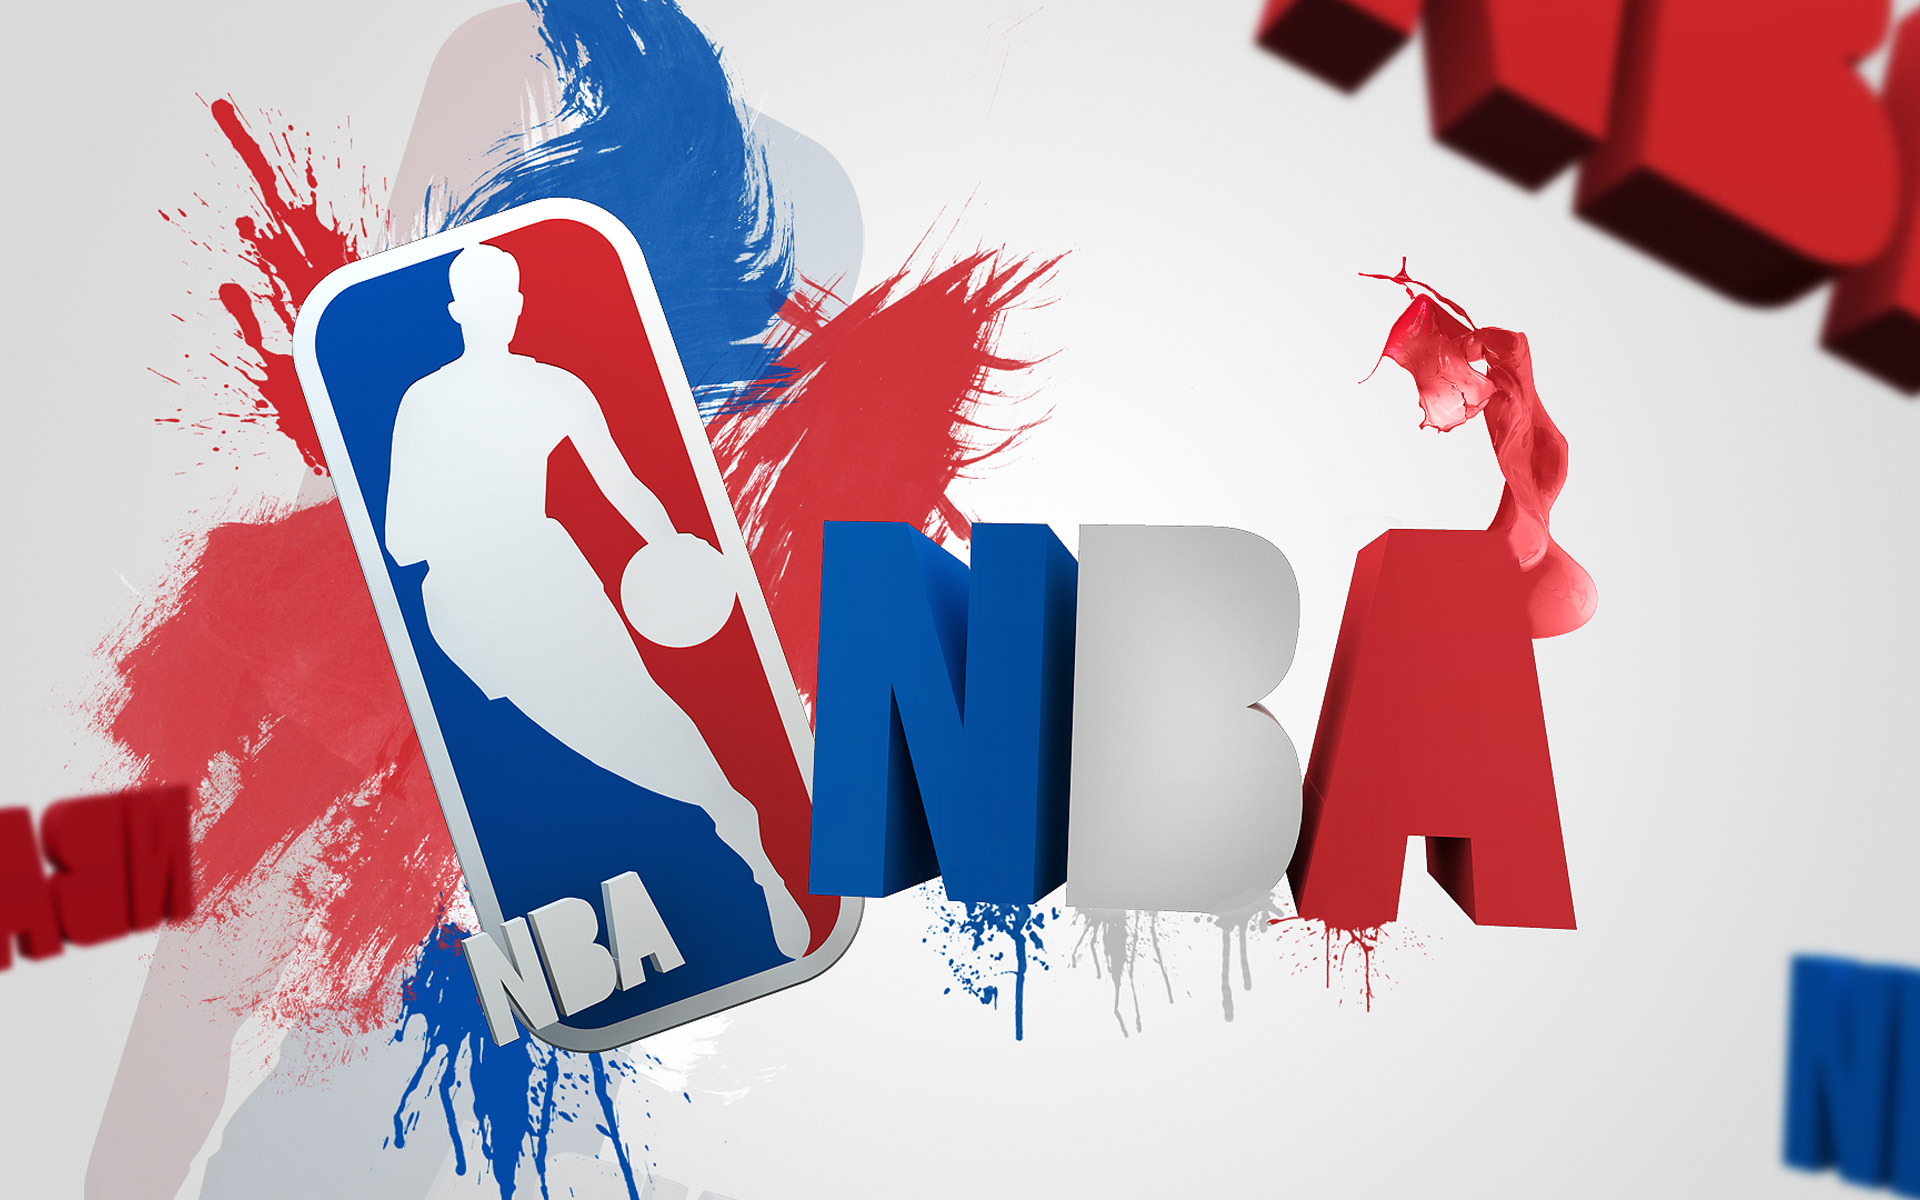 Nba Hd wallpaper - 899647